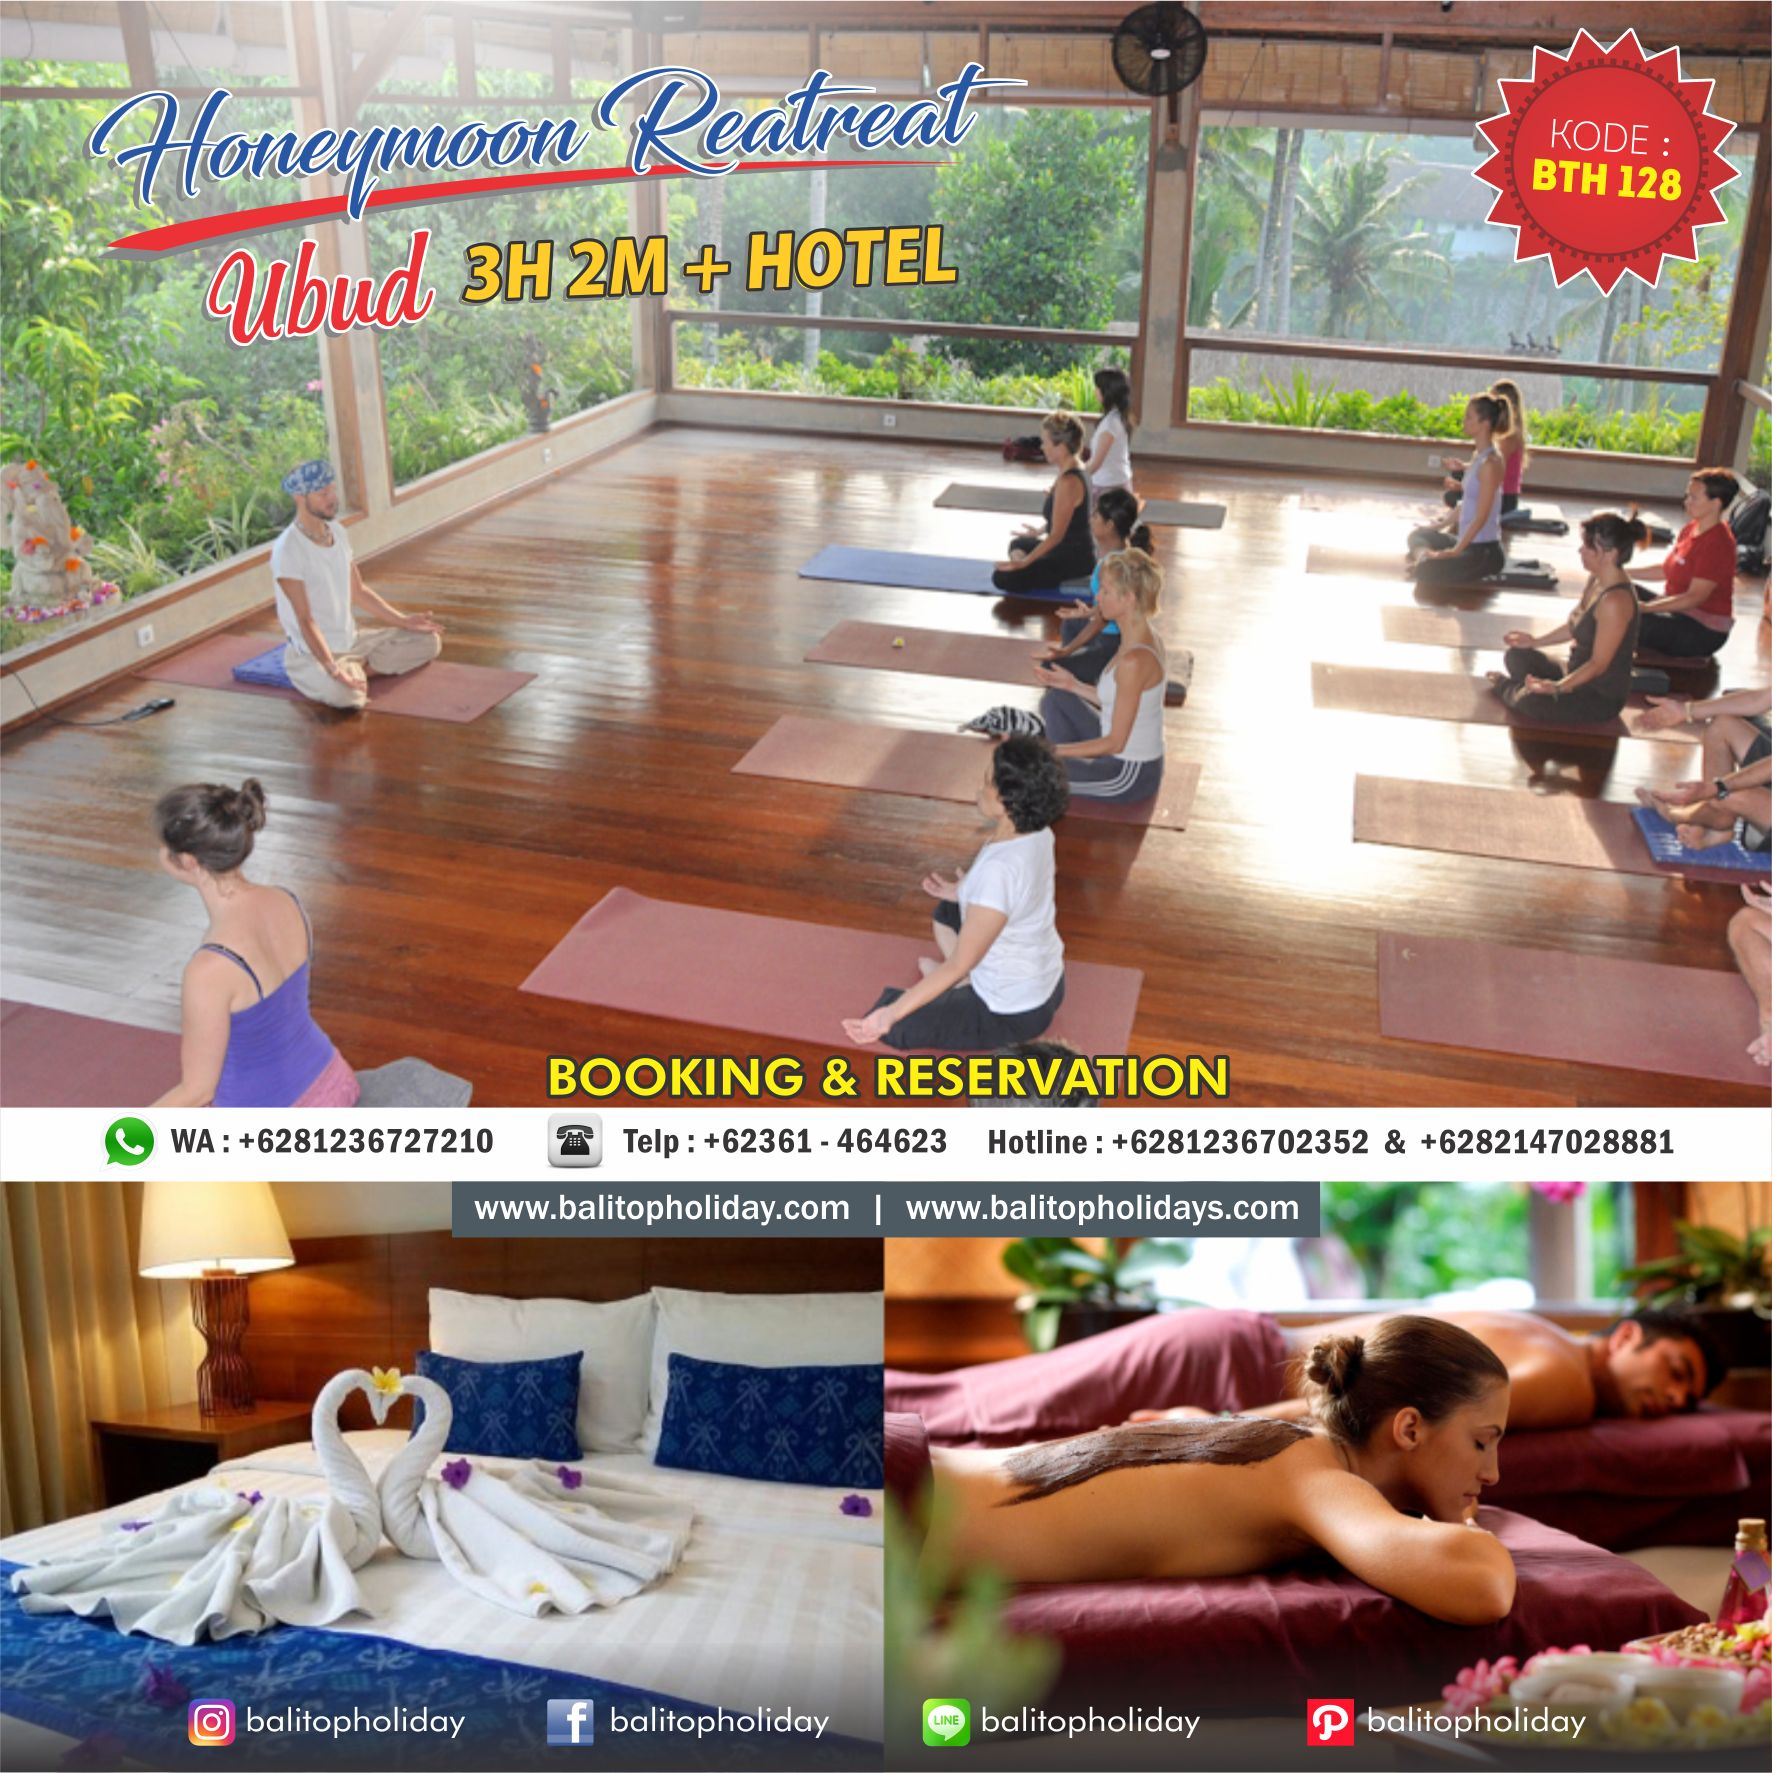 paket honeymoon retreat